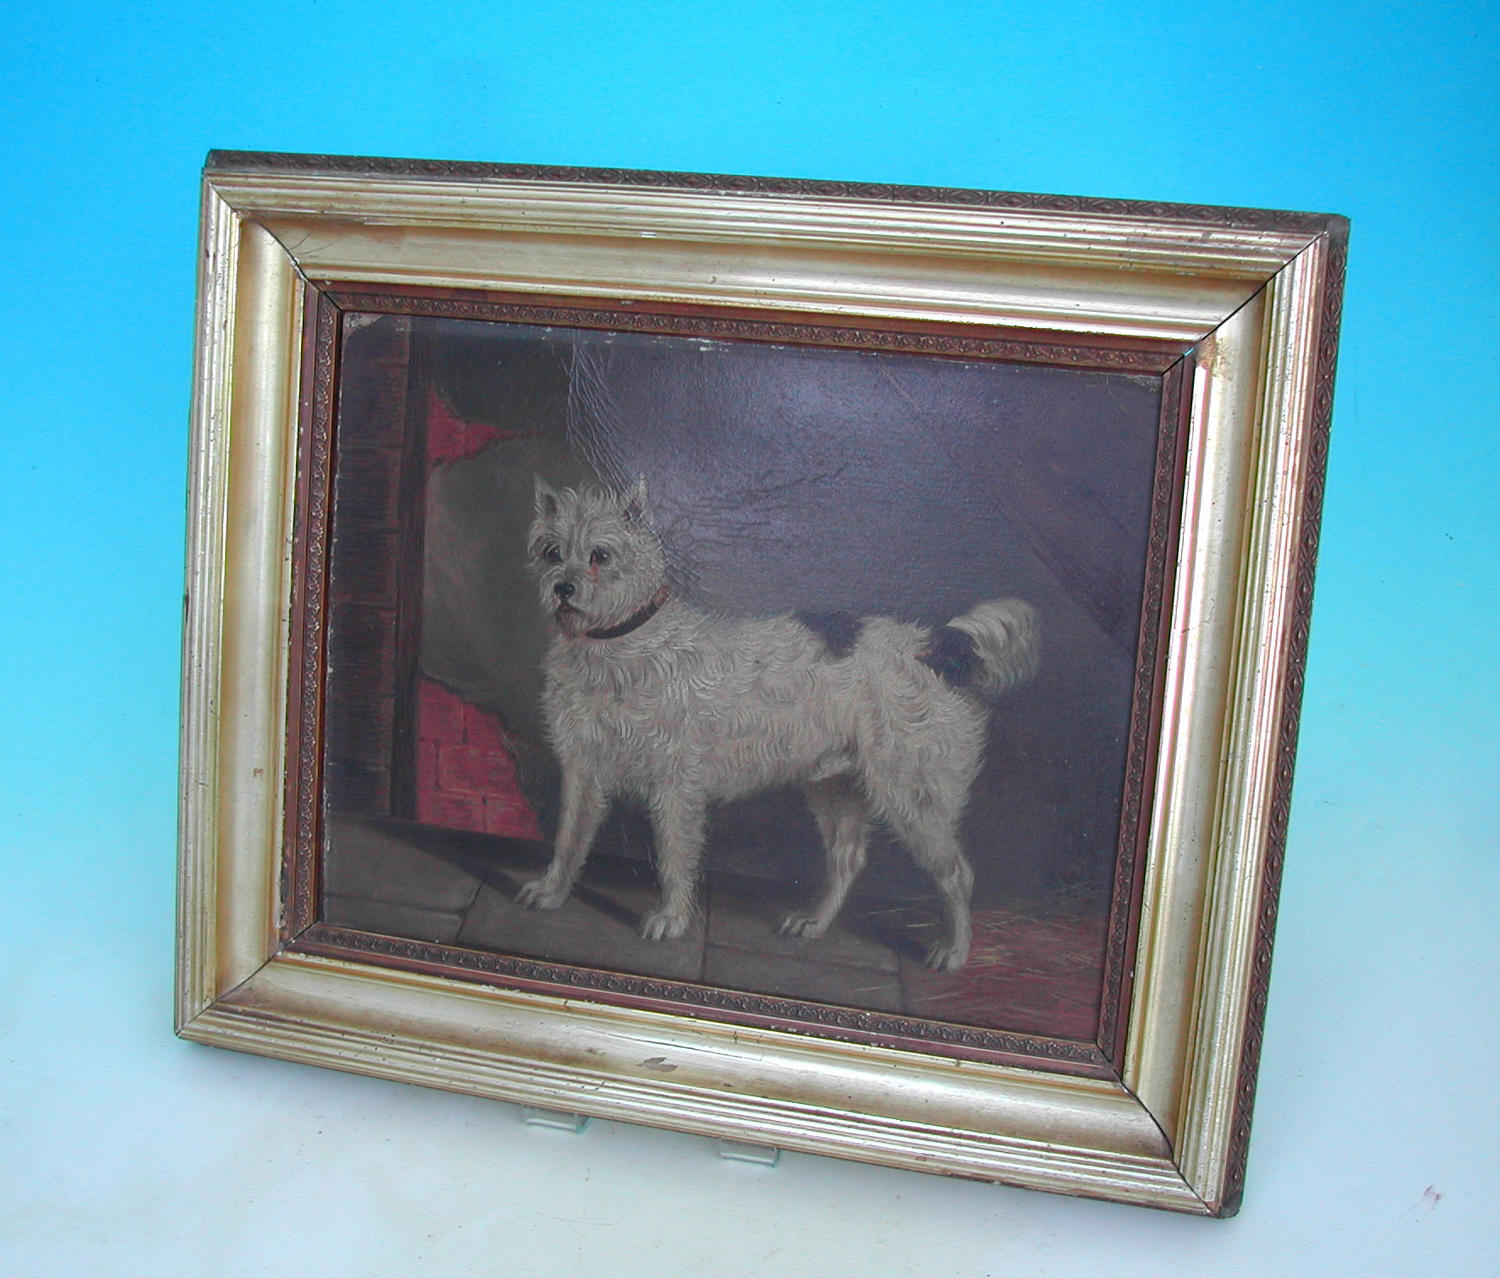 Antique 19thc Oil Painting Of A Terrier On Board.  English. C1860-80.